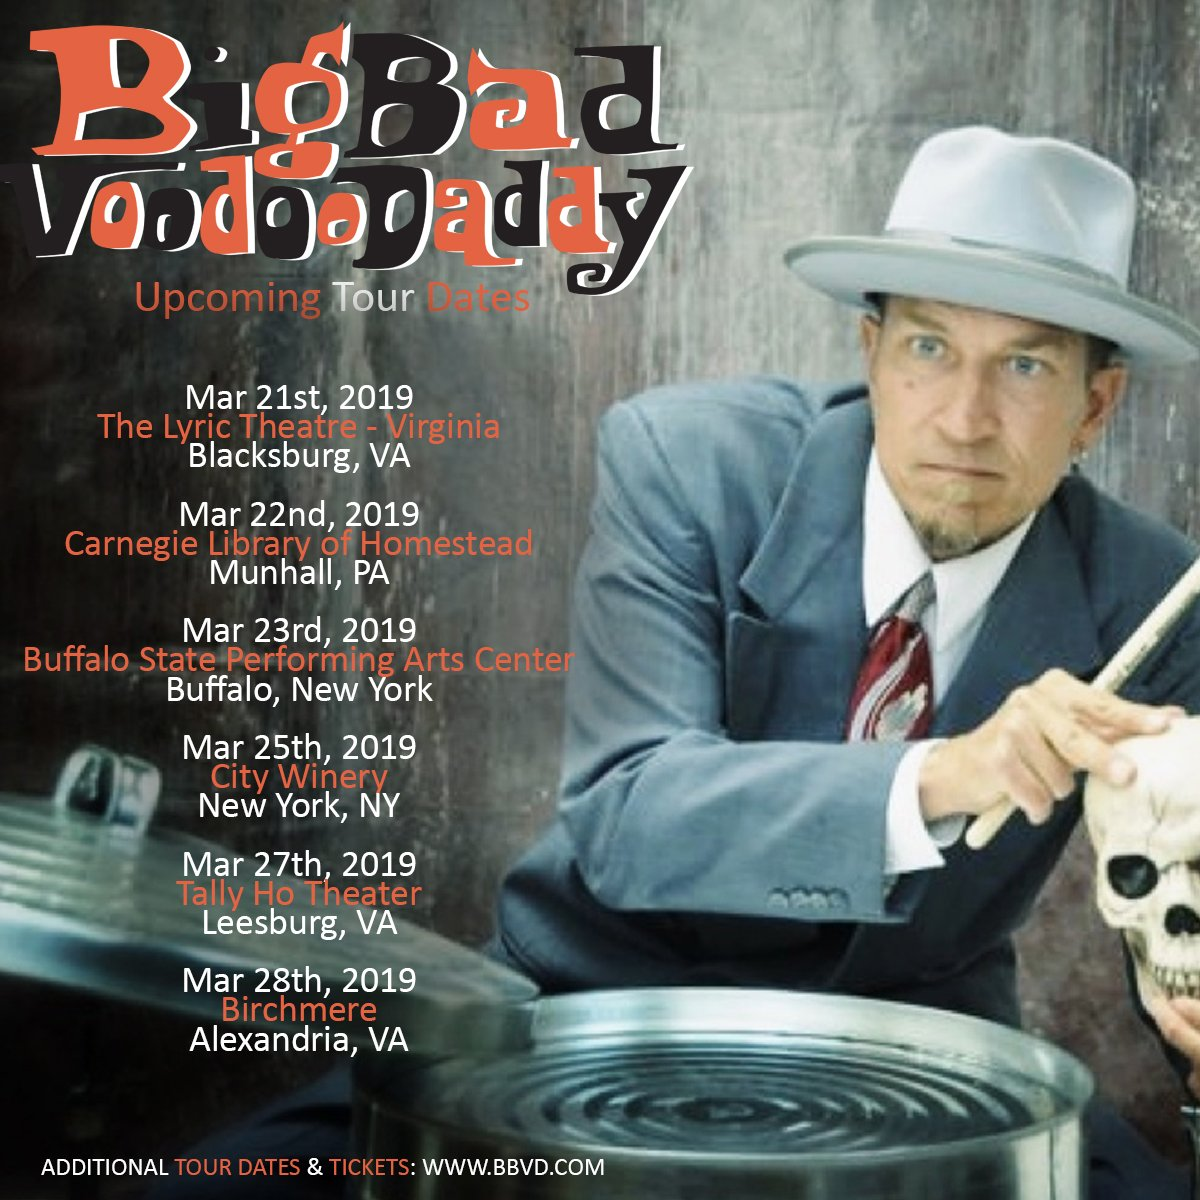 Upcoming @BBVD tour dates!  Get additional tour dates and ticket links here: http://www.BBVD.com  #swingmusic #bbvdtour2019 #25yearsofbbvd